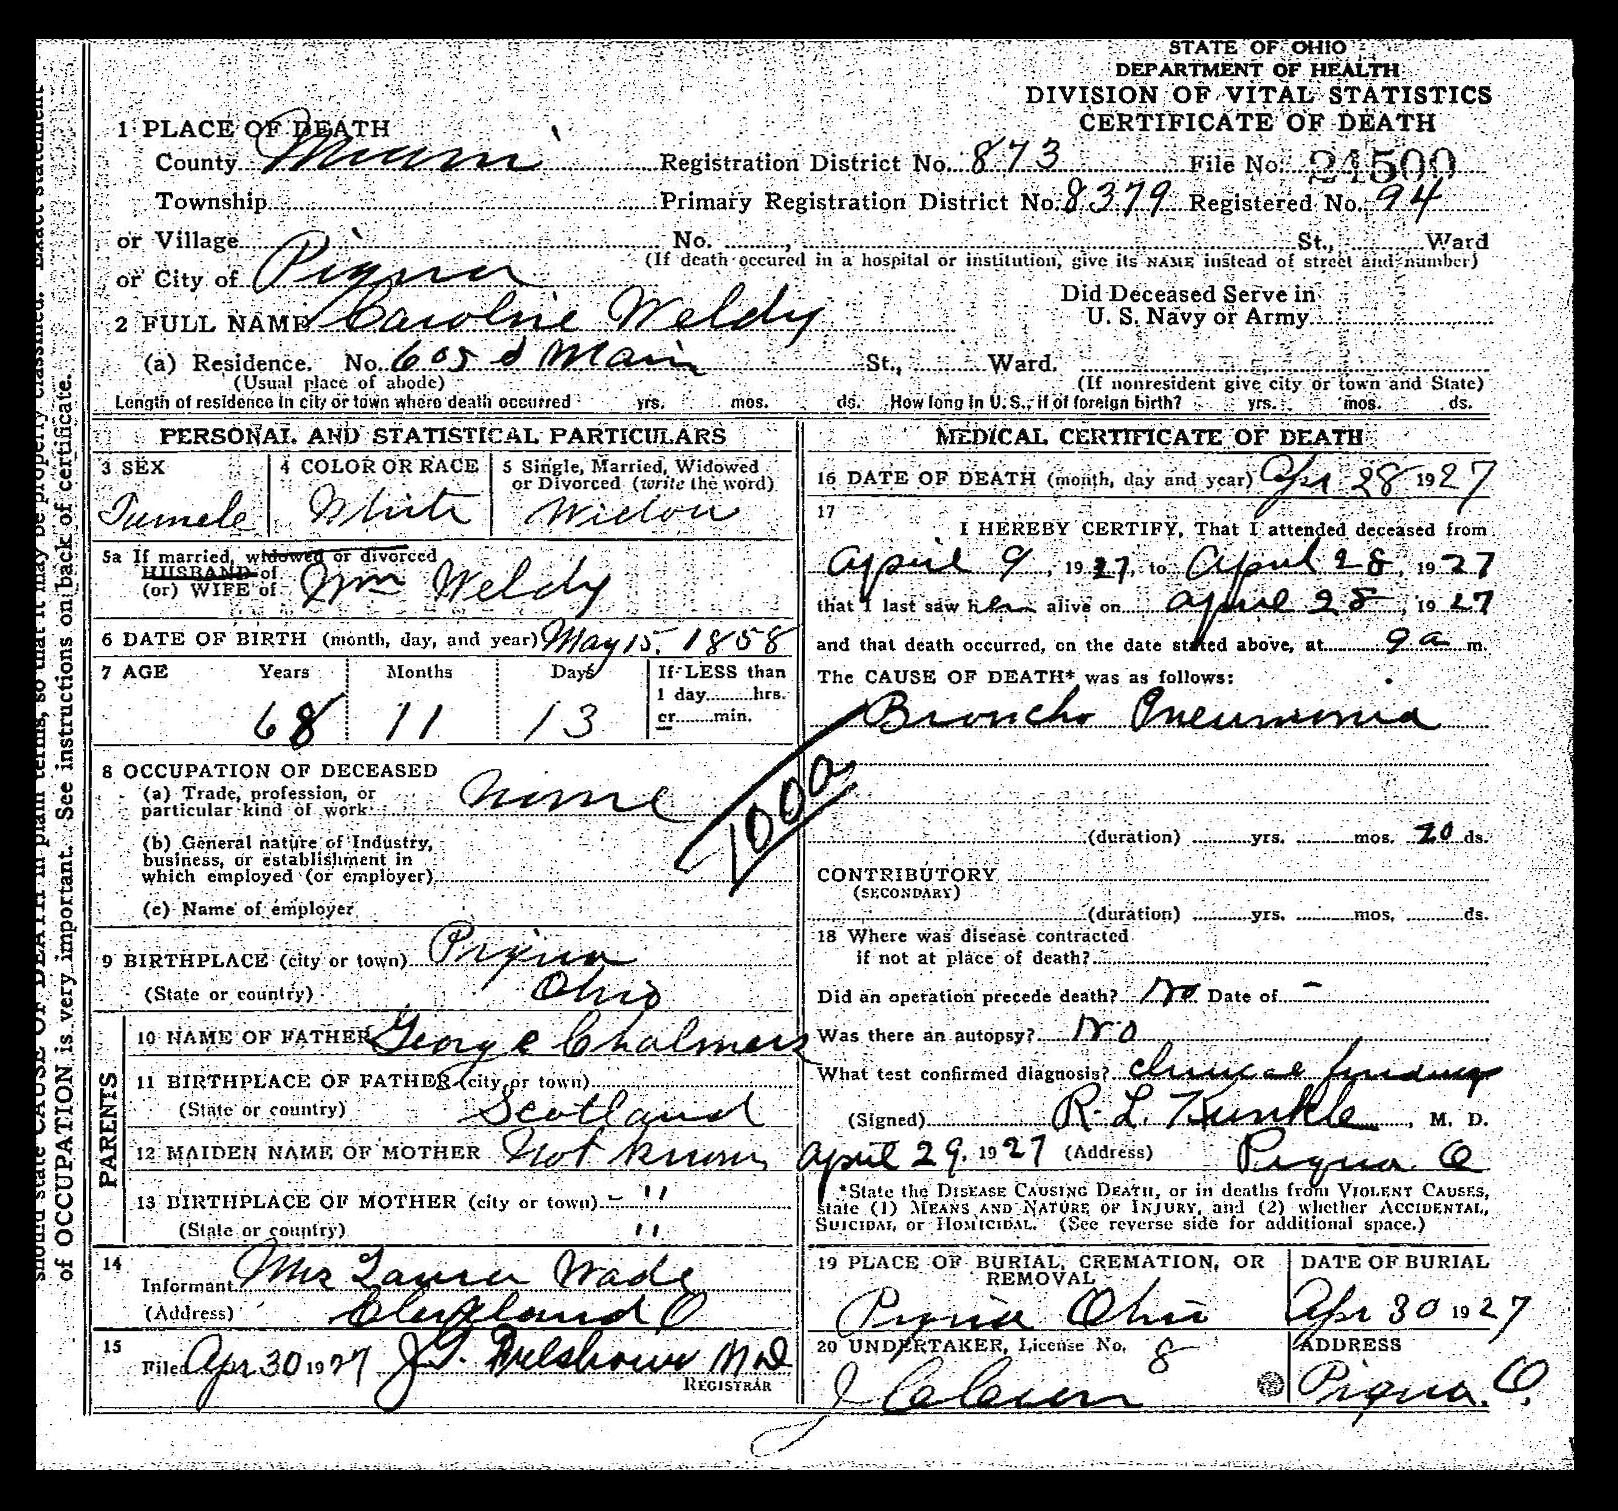 Chalmers fgs death certificate ohio department of health death certificate file number 24500 1927 caroline weldy division of vital statistics columbus aiddatafo Image collections